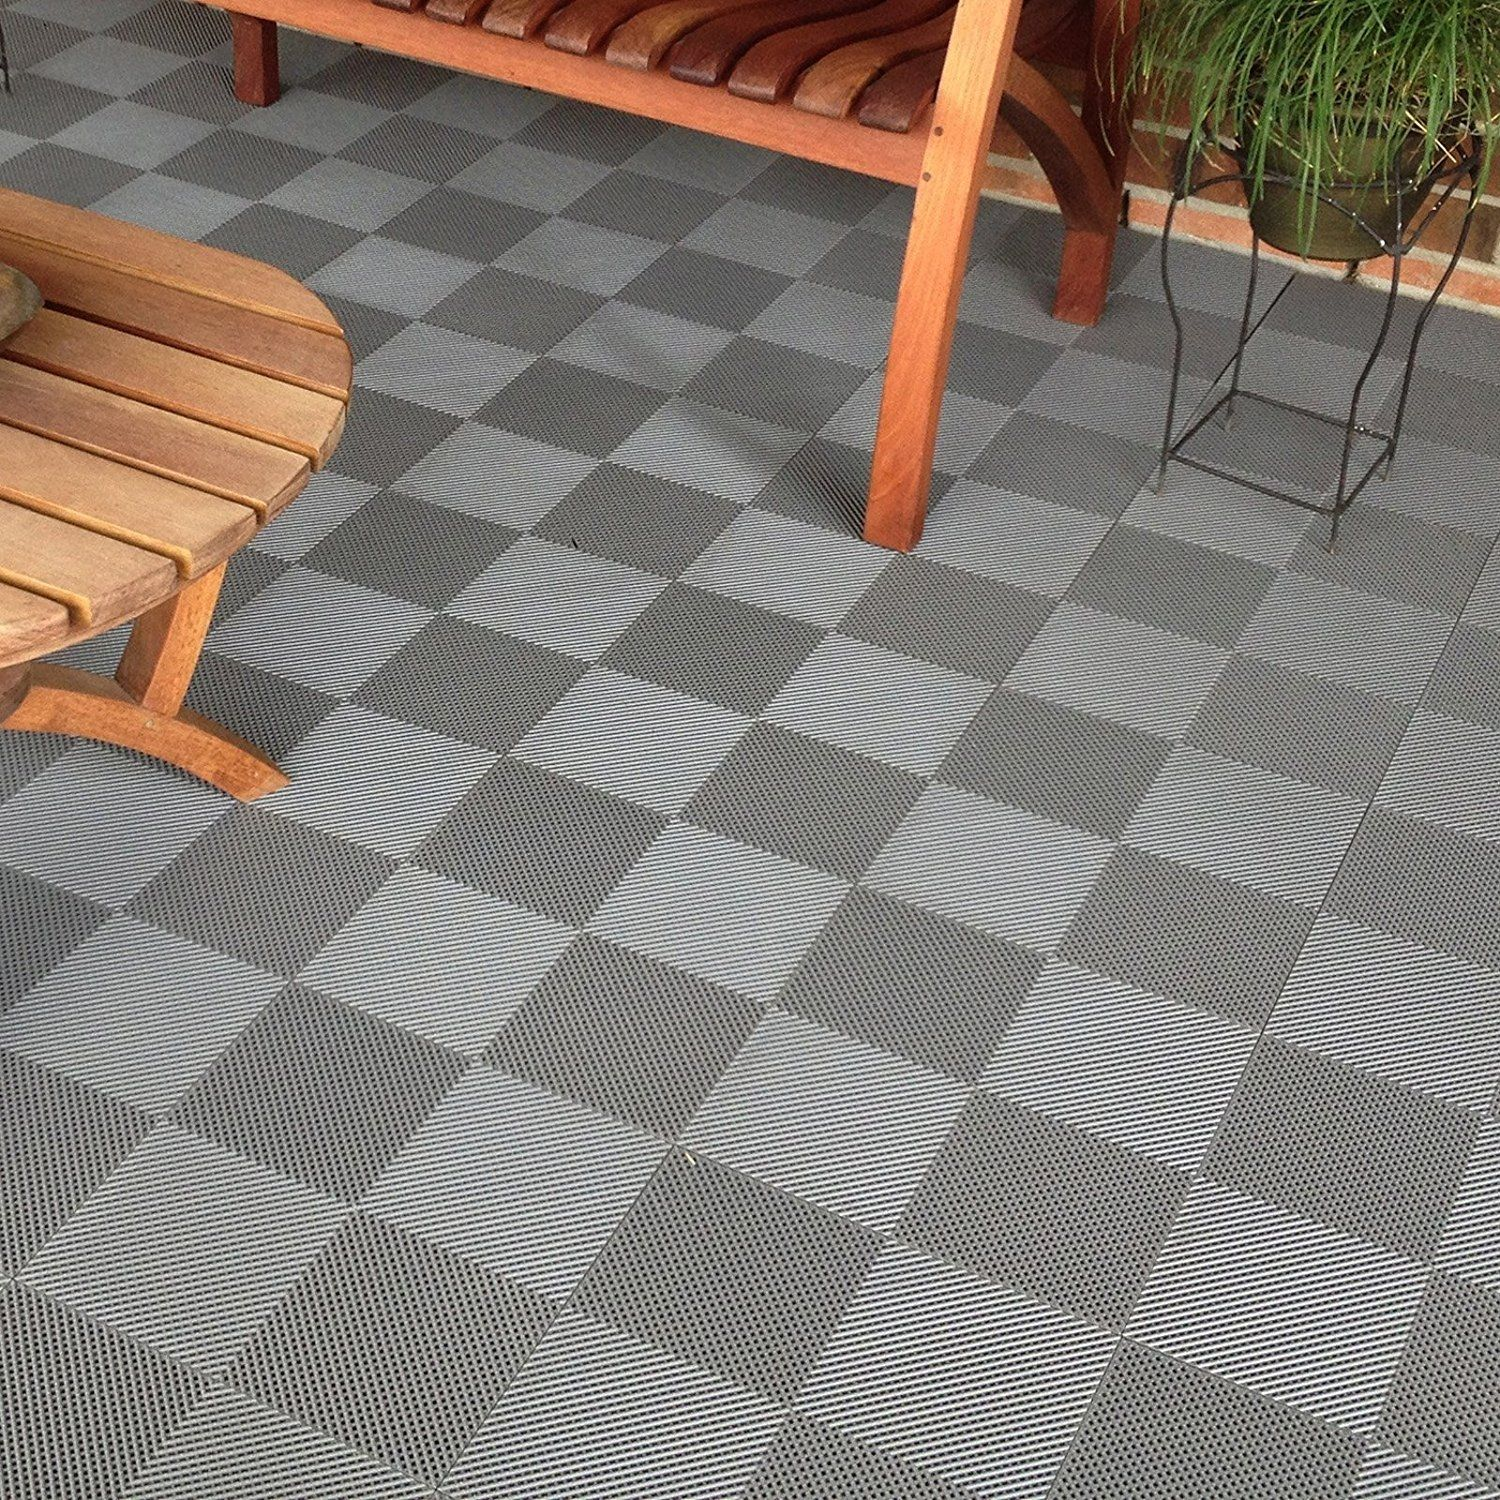 Non slip floor tiles outdoor httpnextsoft21 pinterest non slip floor tiles outdoor dailygadgetfo Choice Image